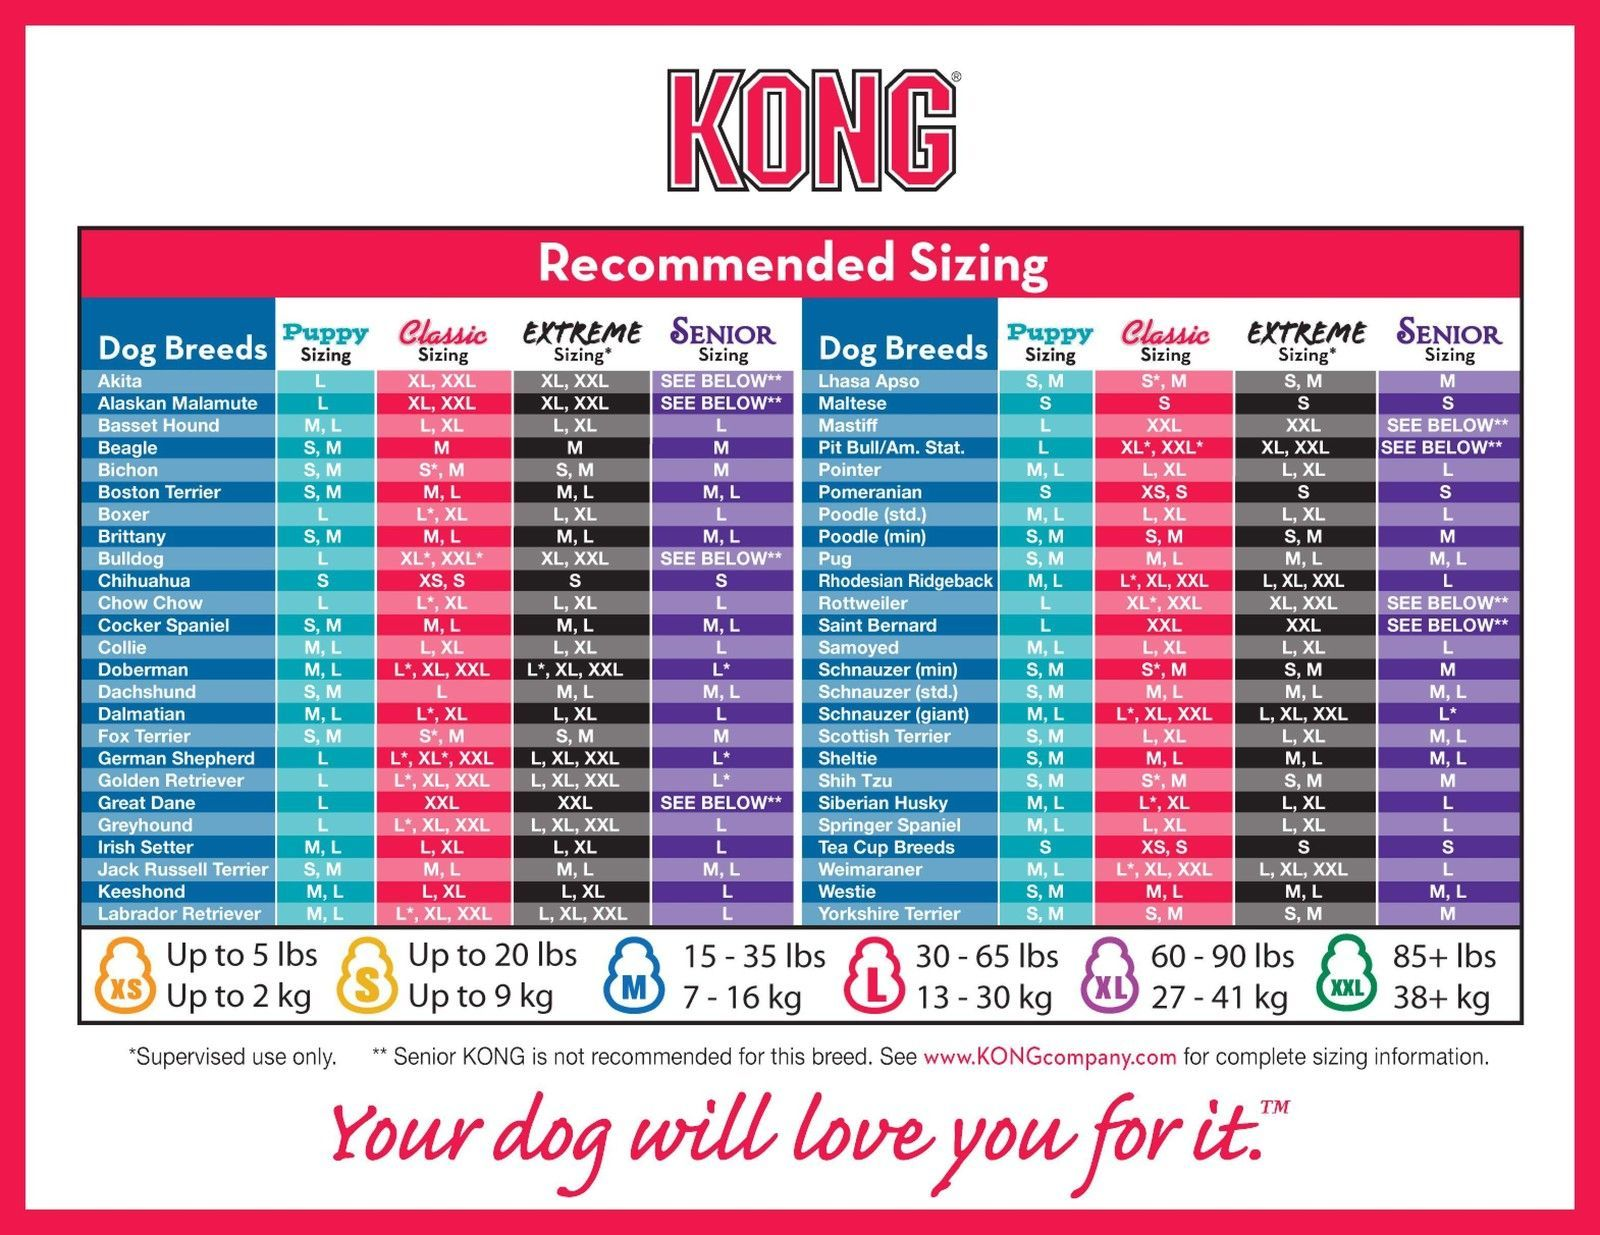 Kong recommended sizing